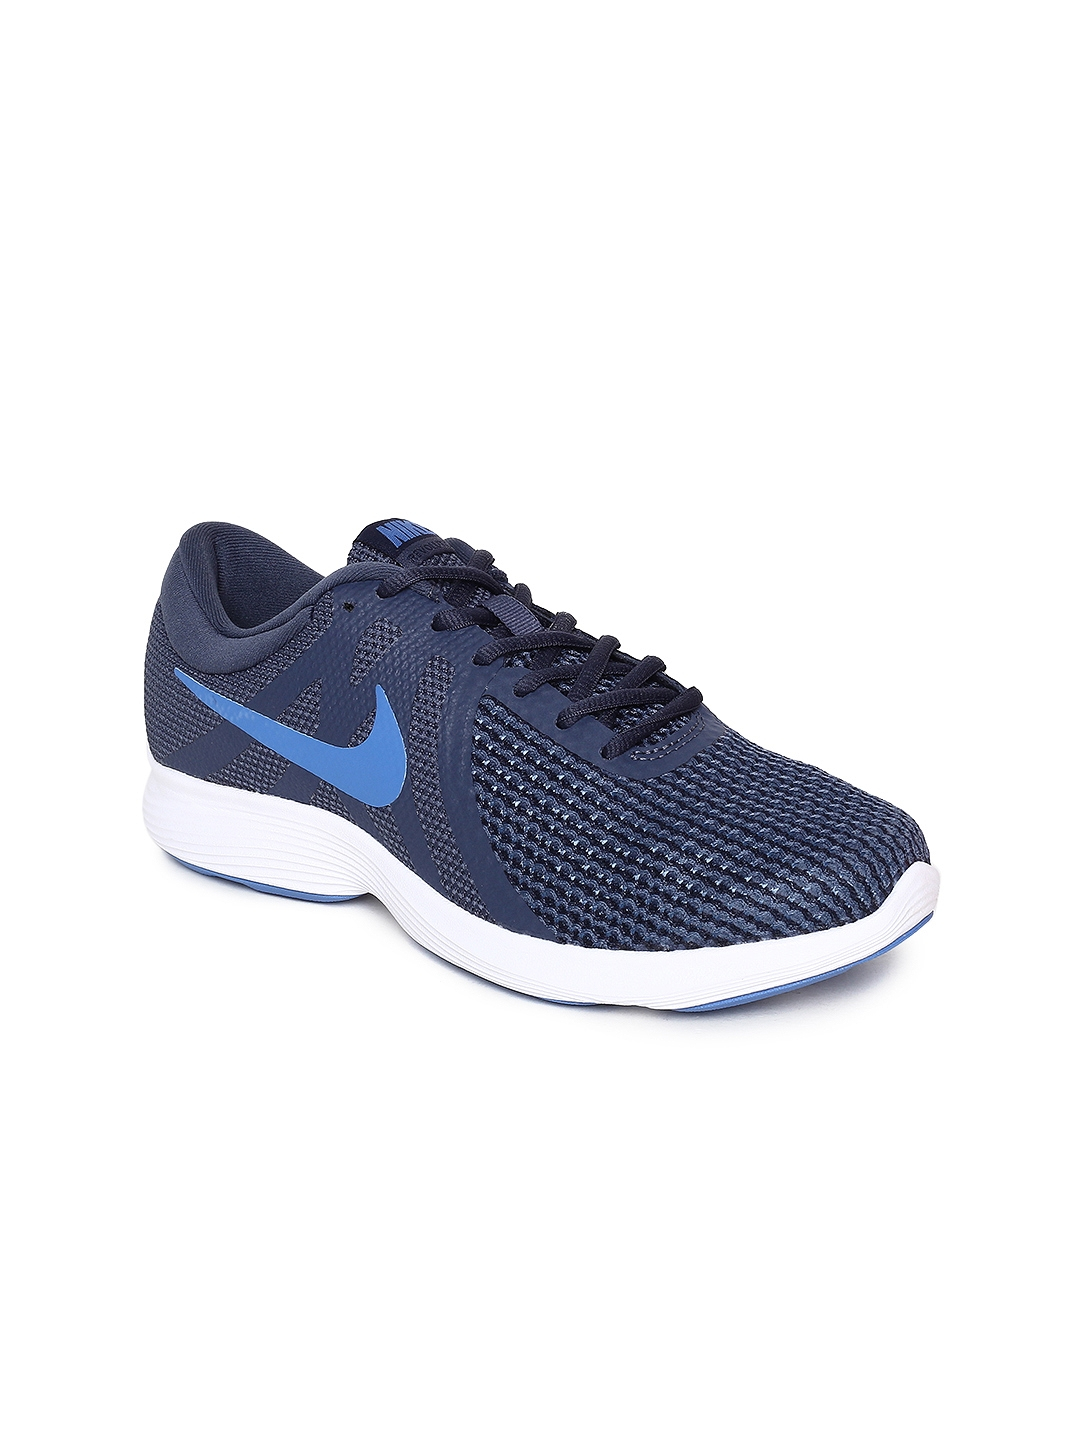 573443aa5b14 Buy Nike Women Blue REVOLUTION 4 Running Shoes - Sports Shoes for ...